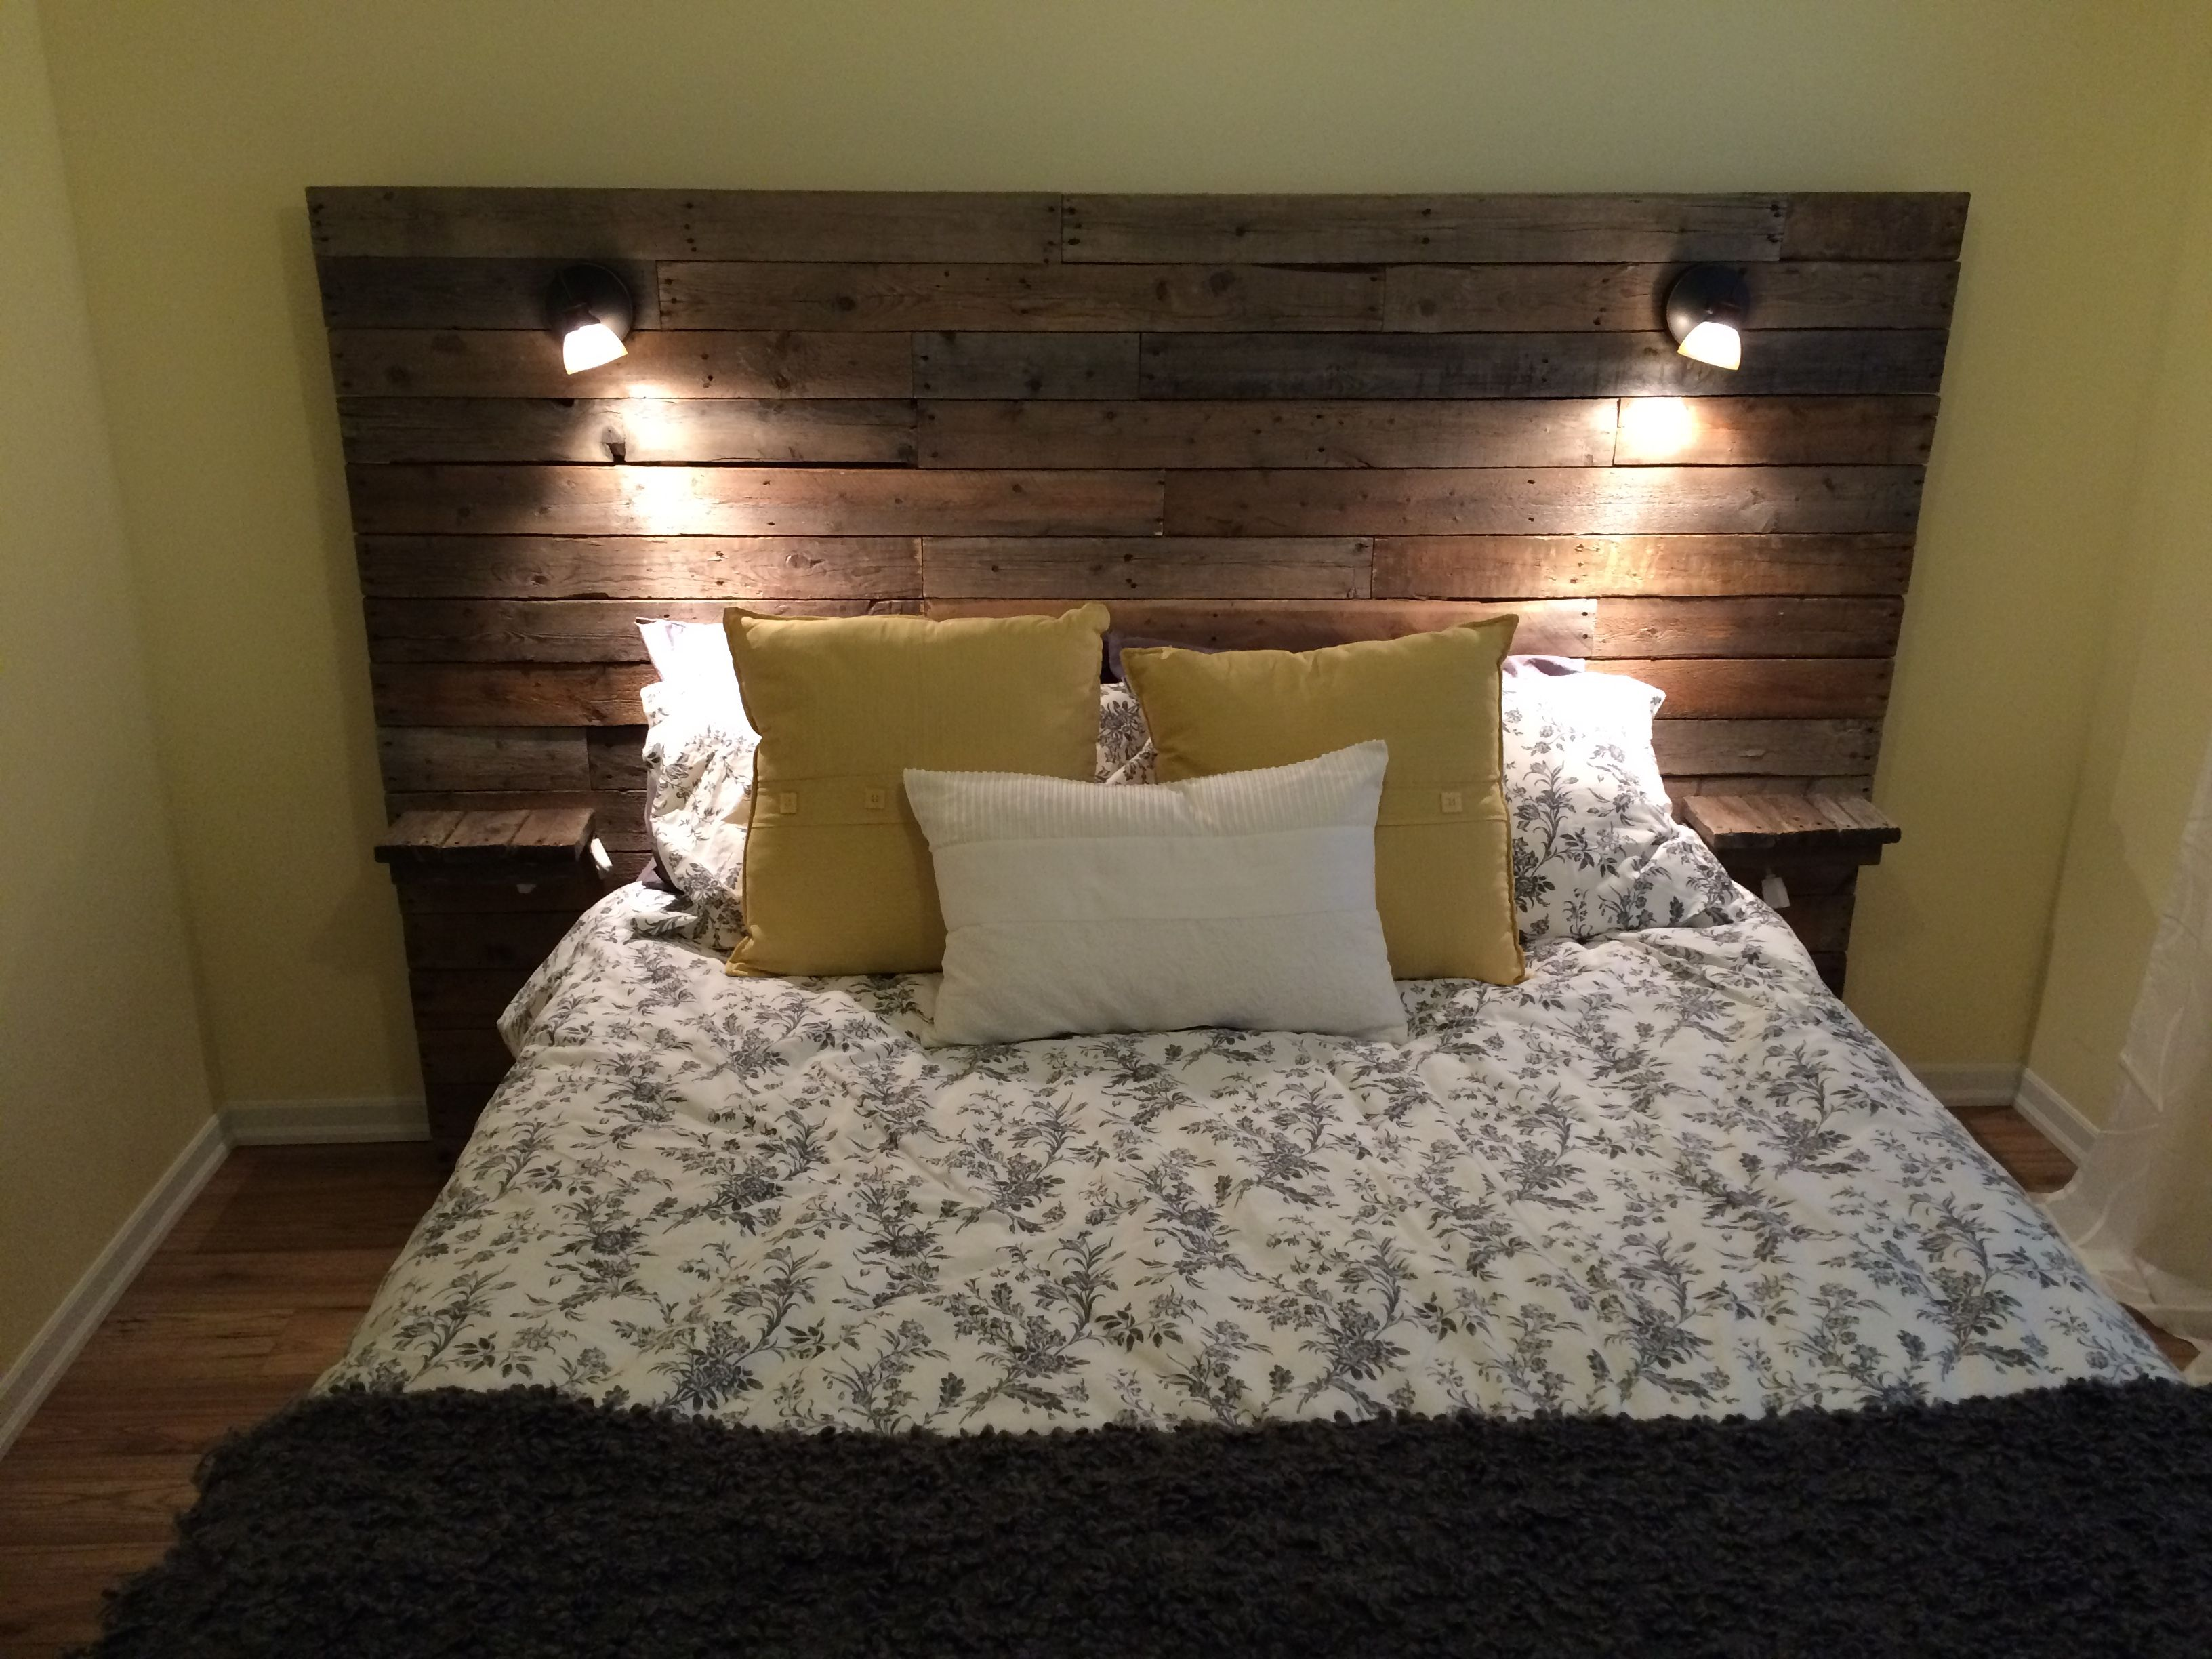 Pallet headboard with shelf lights and plugs for cell for Large headboard ideas